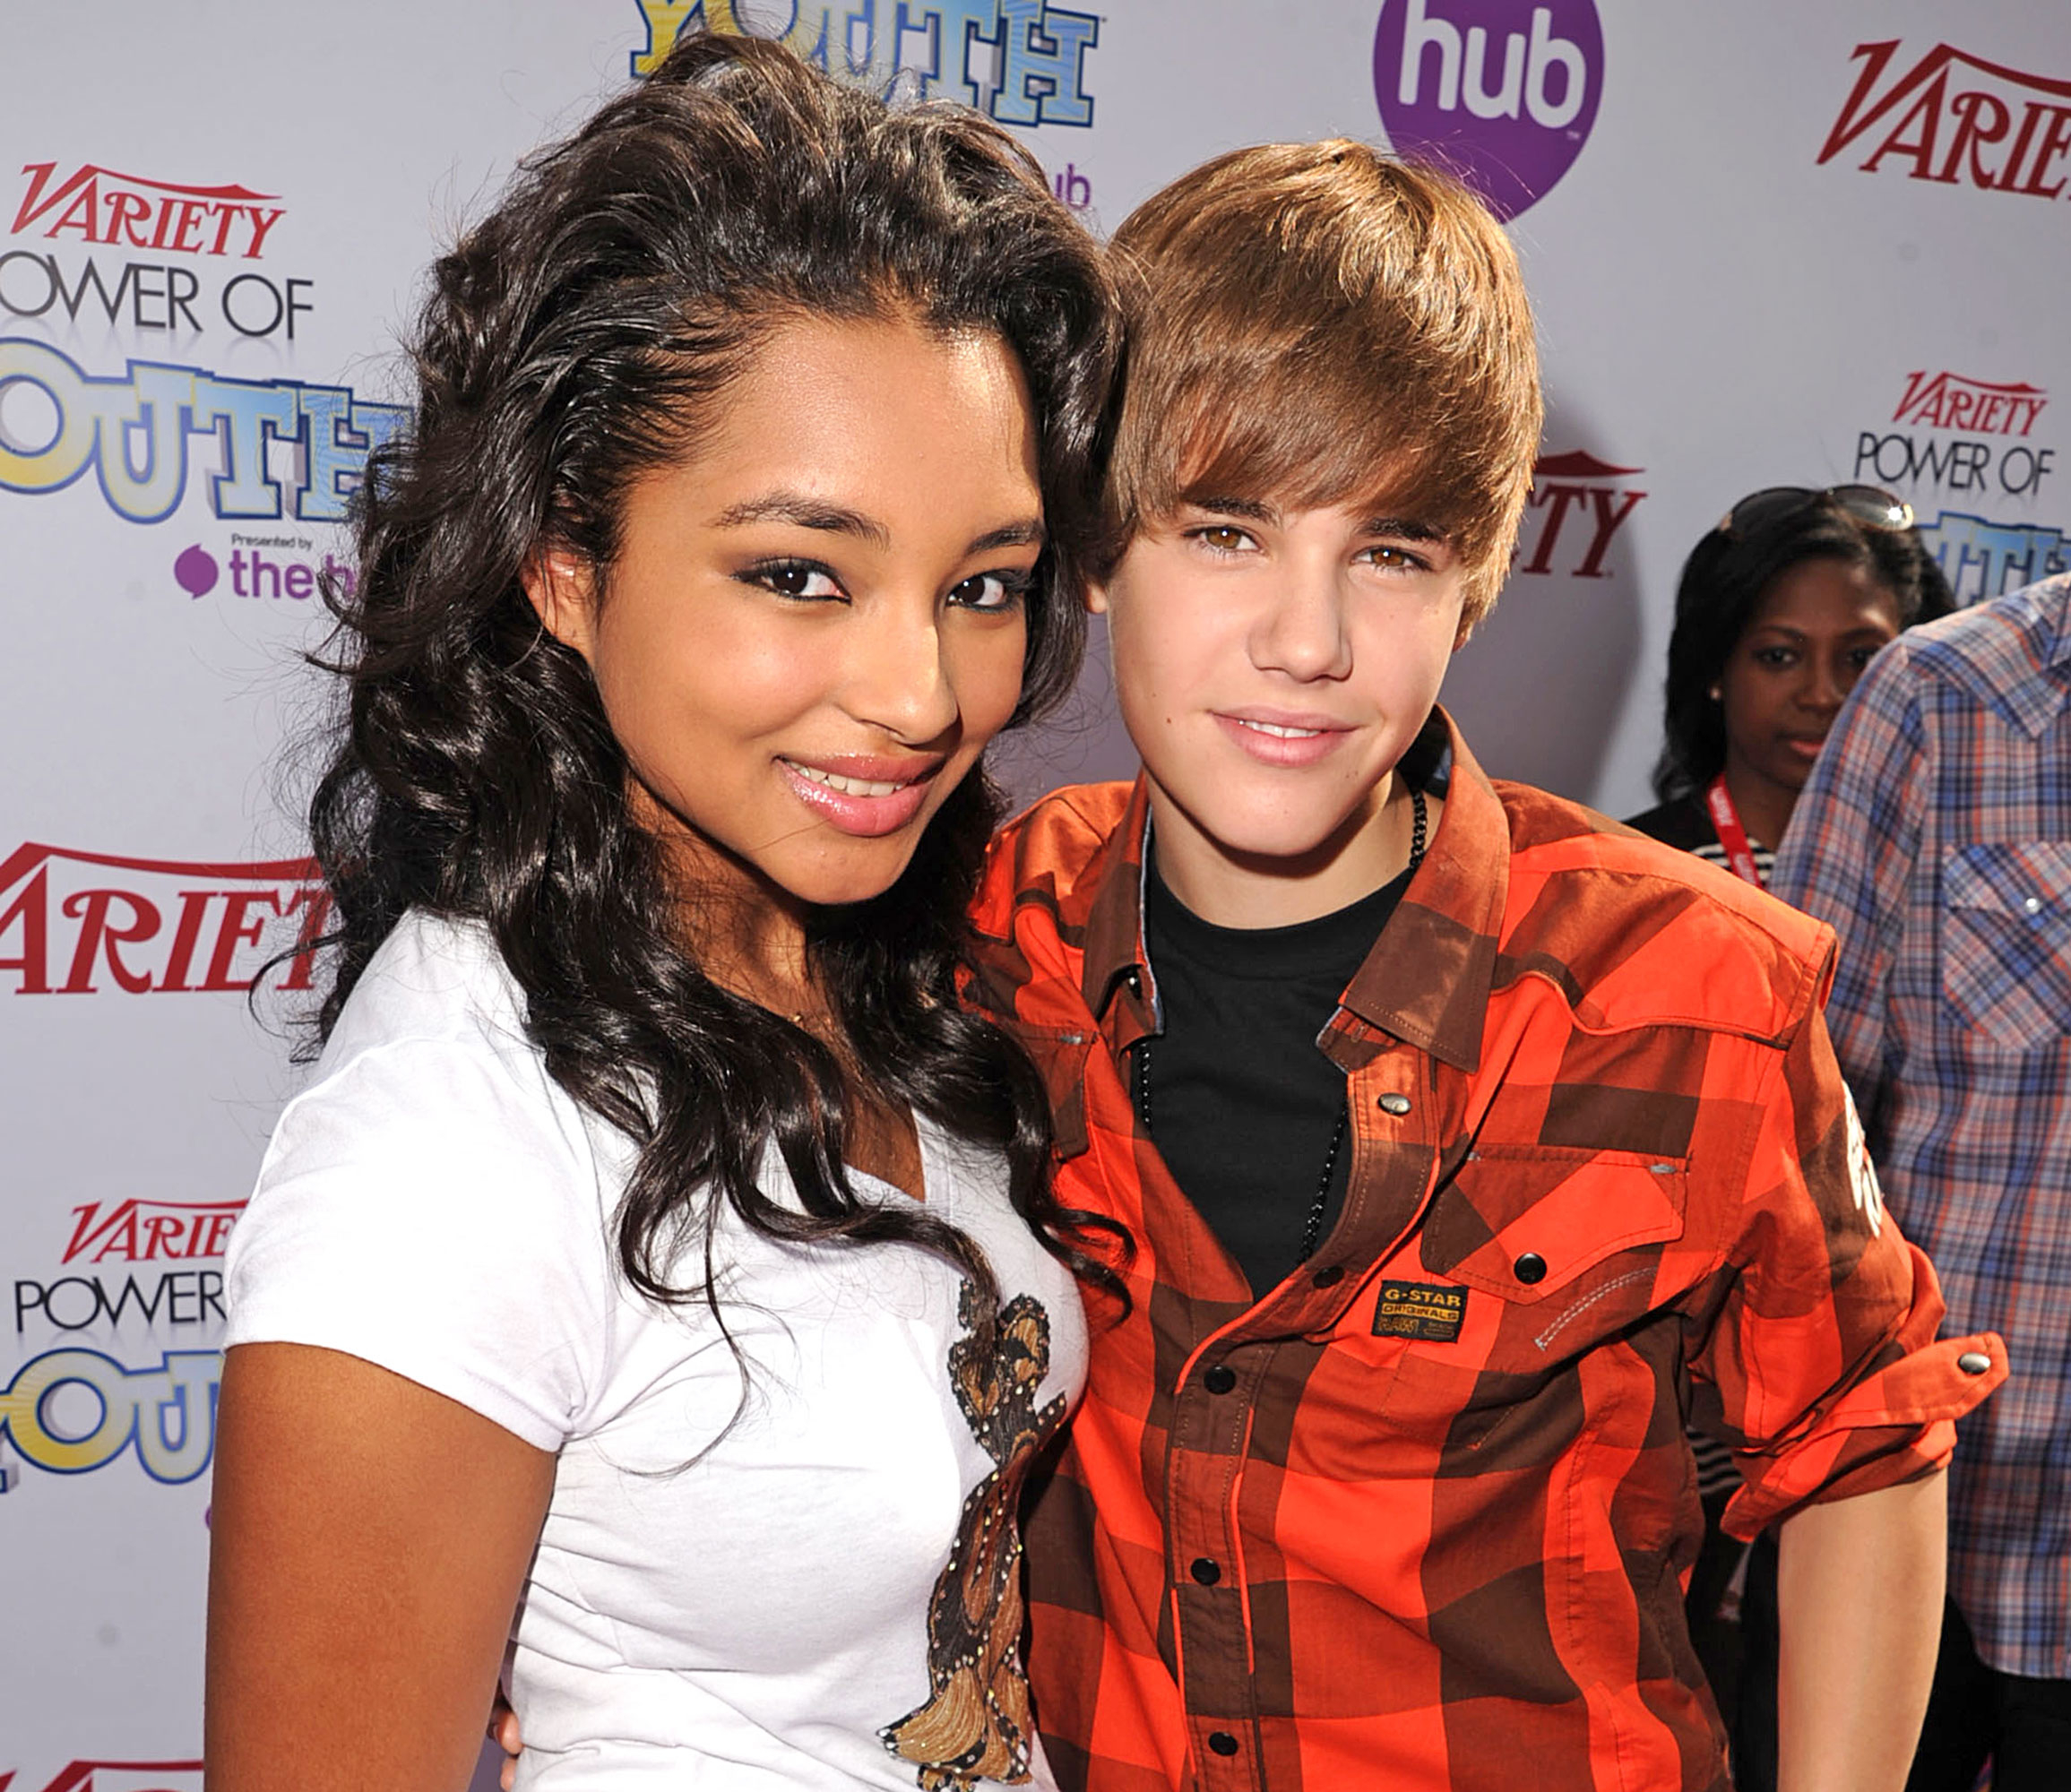 Whos justin bieber dating now - Adult videos